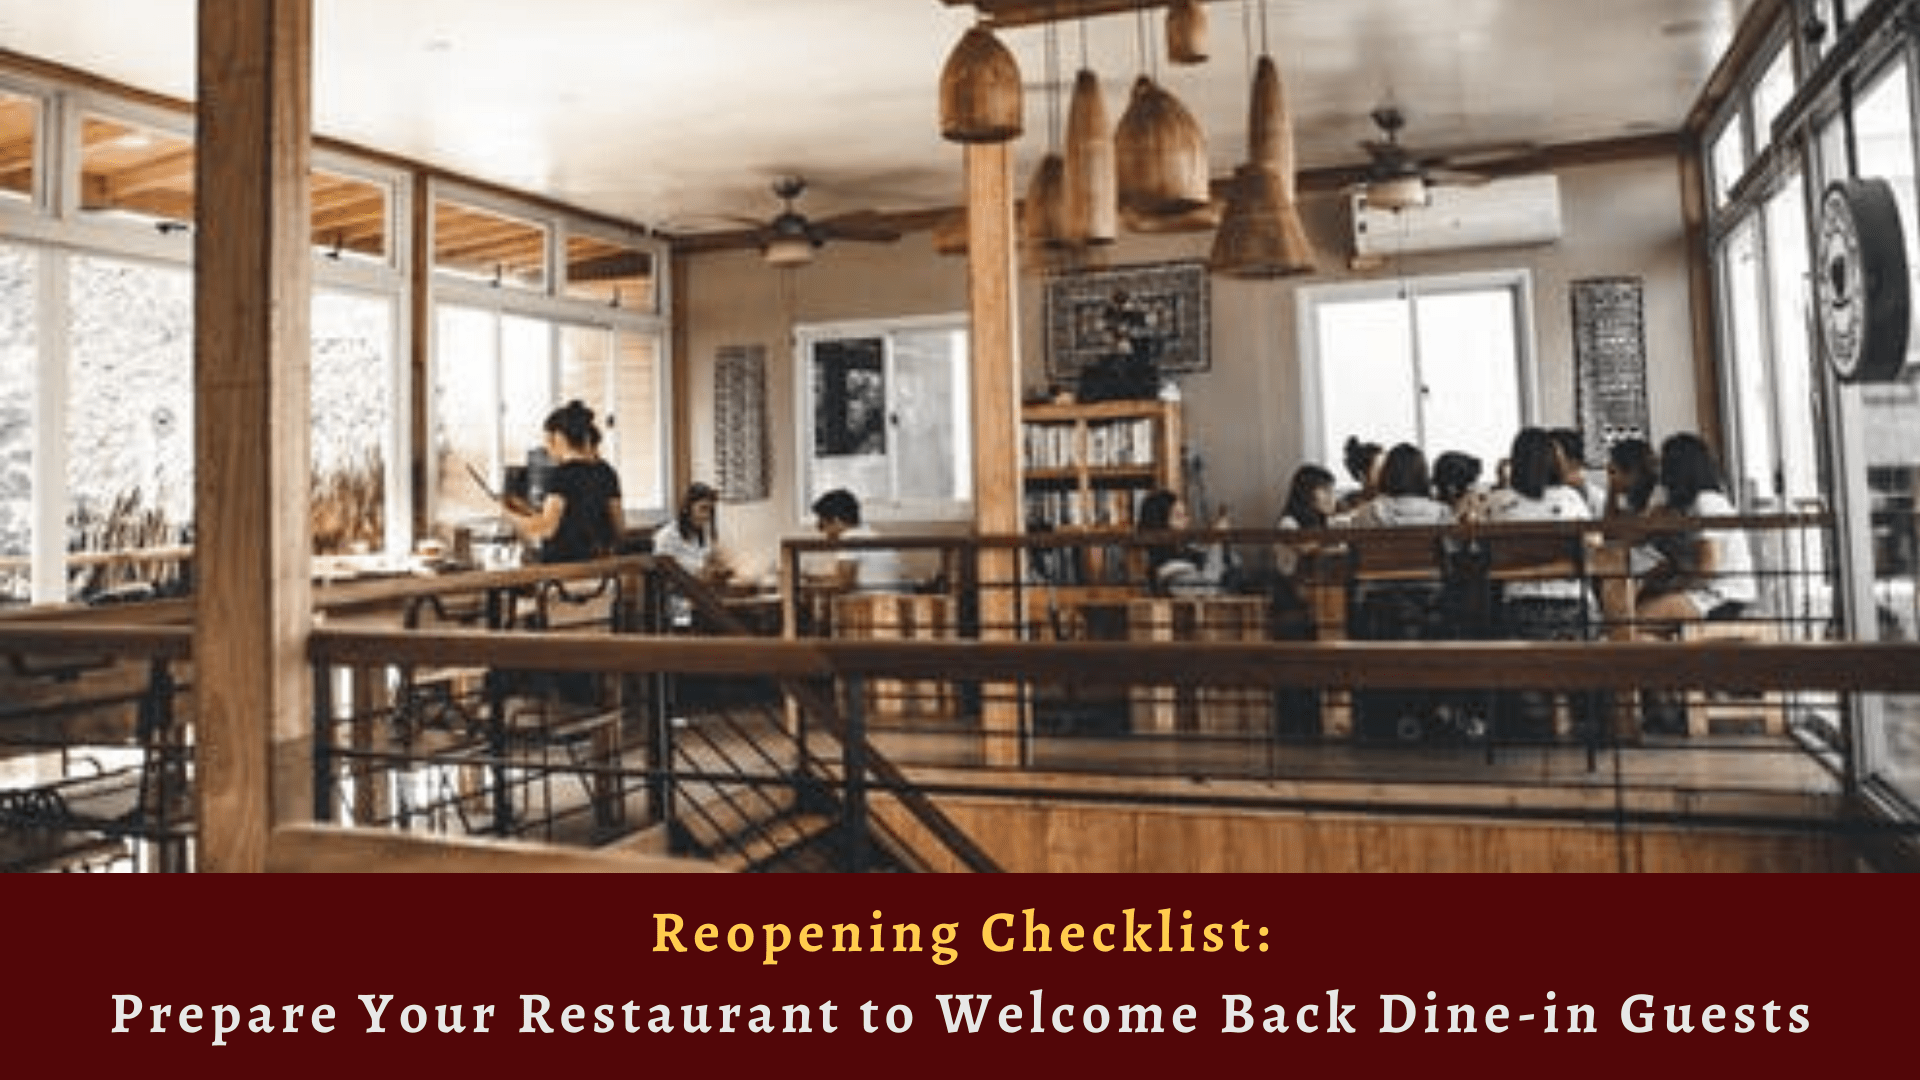 COVID-19 Information and Resources for Restaurants